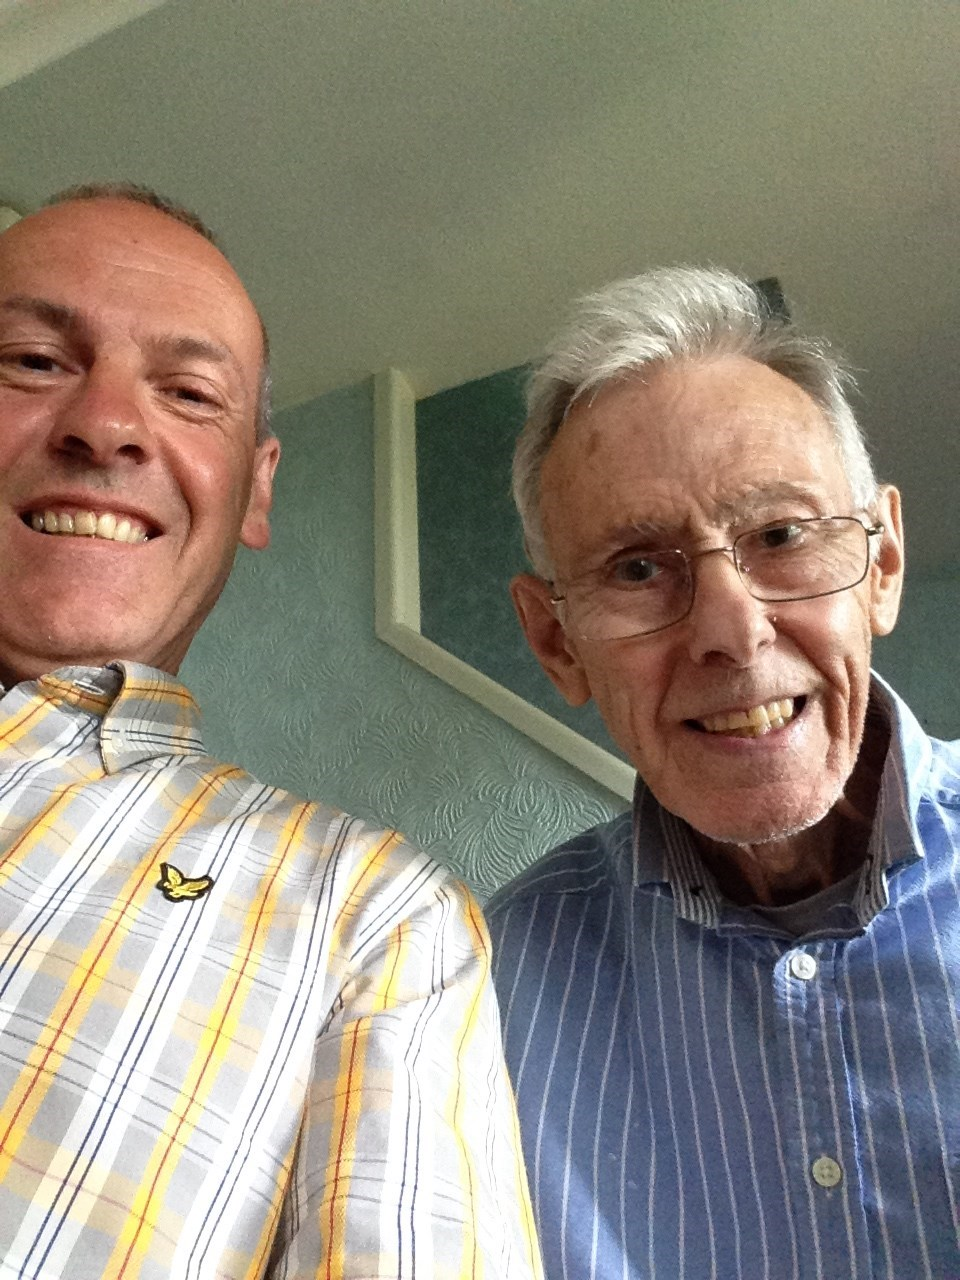 'Selfie' with my Smiling Dad on one of his good days.. x x